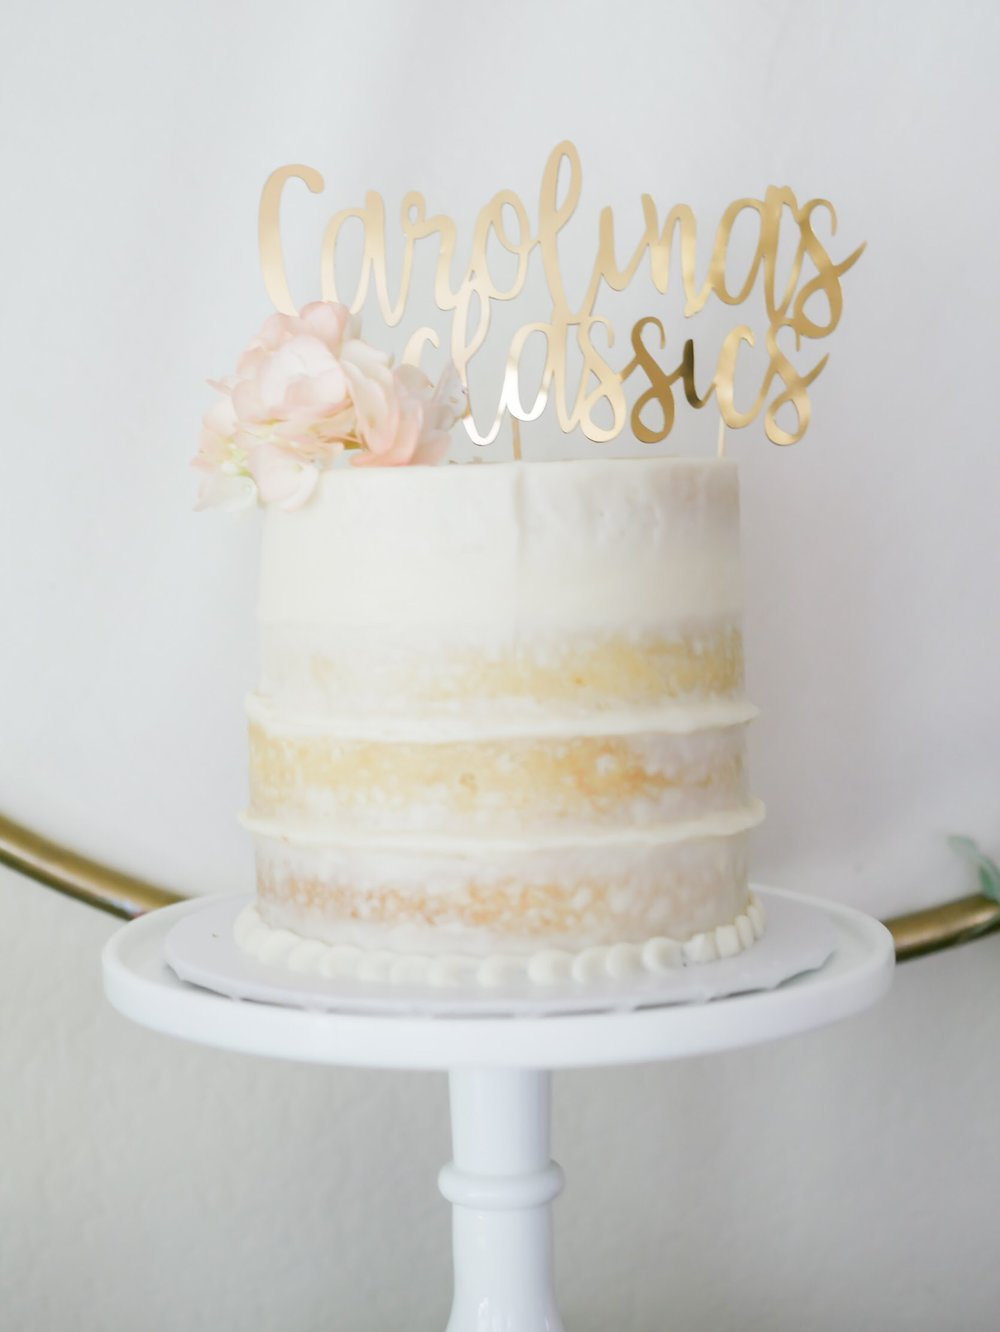 Simple is oh so pretty. A simple barely frosted party cake with a pretty gold topper and a simple floral embellishment makes a huge statement. Click to see all the vintage garden party ideas from Mint Event Design in Austin Texas www.minteventdesign.com #dessertparty #partytips #partyplanning #partyideas #diyparty #desserttable #partycake